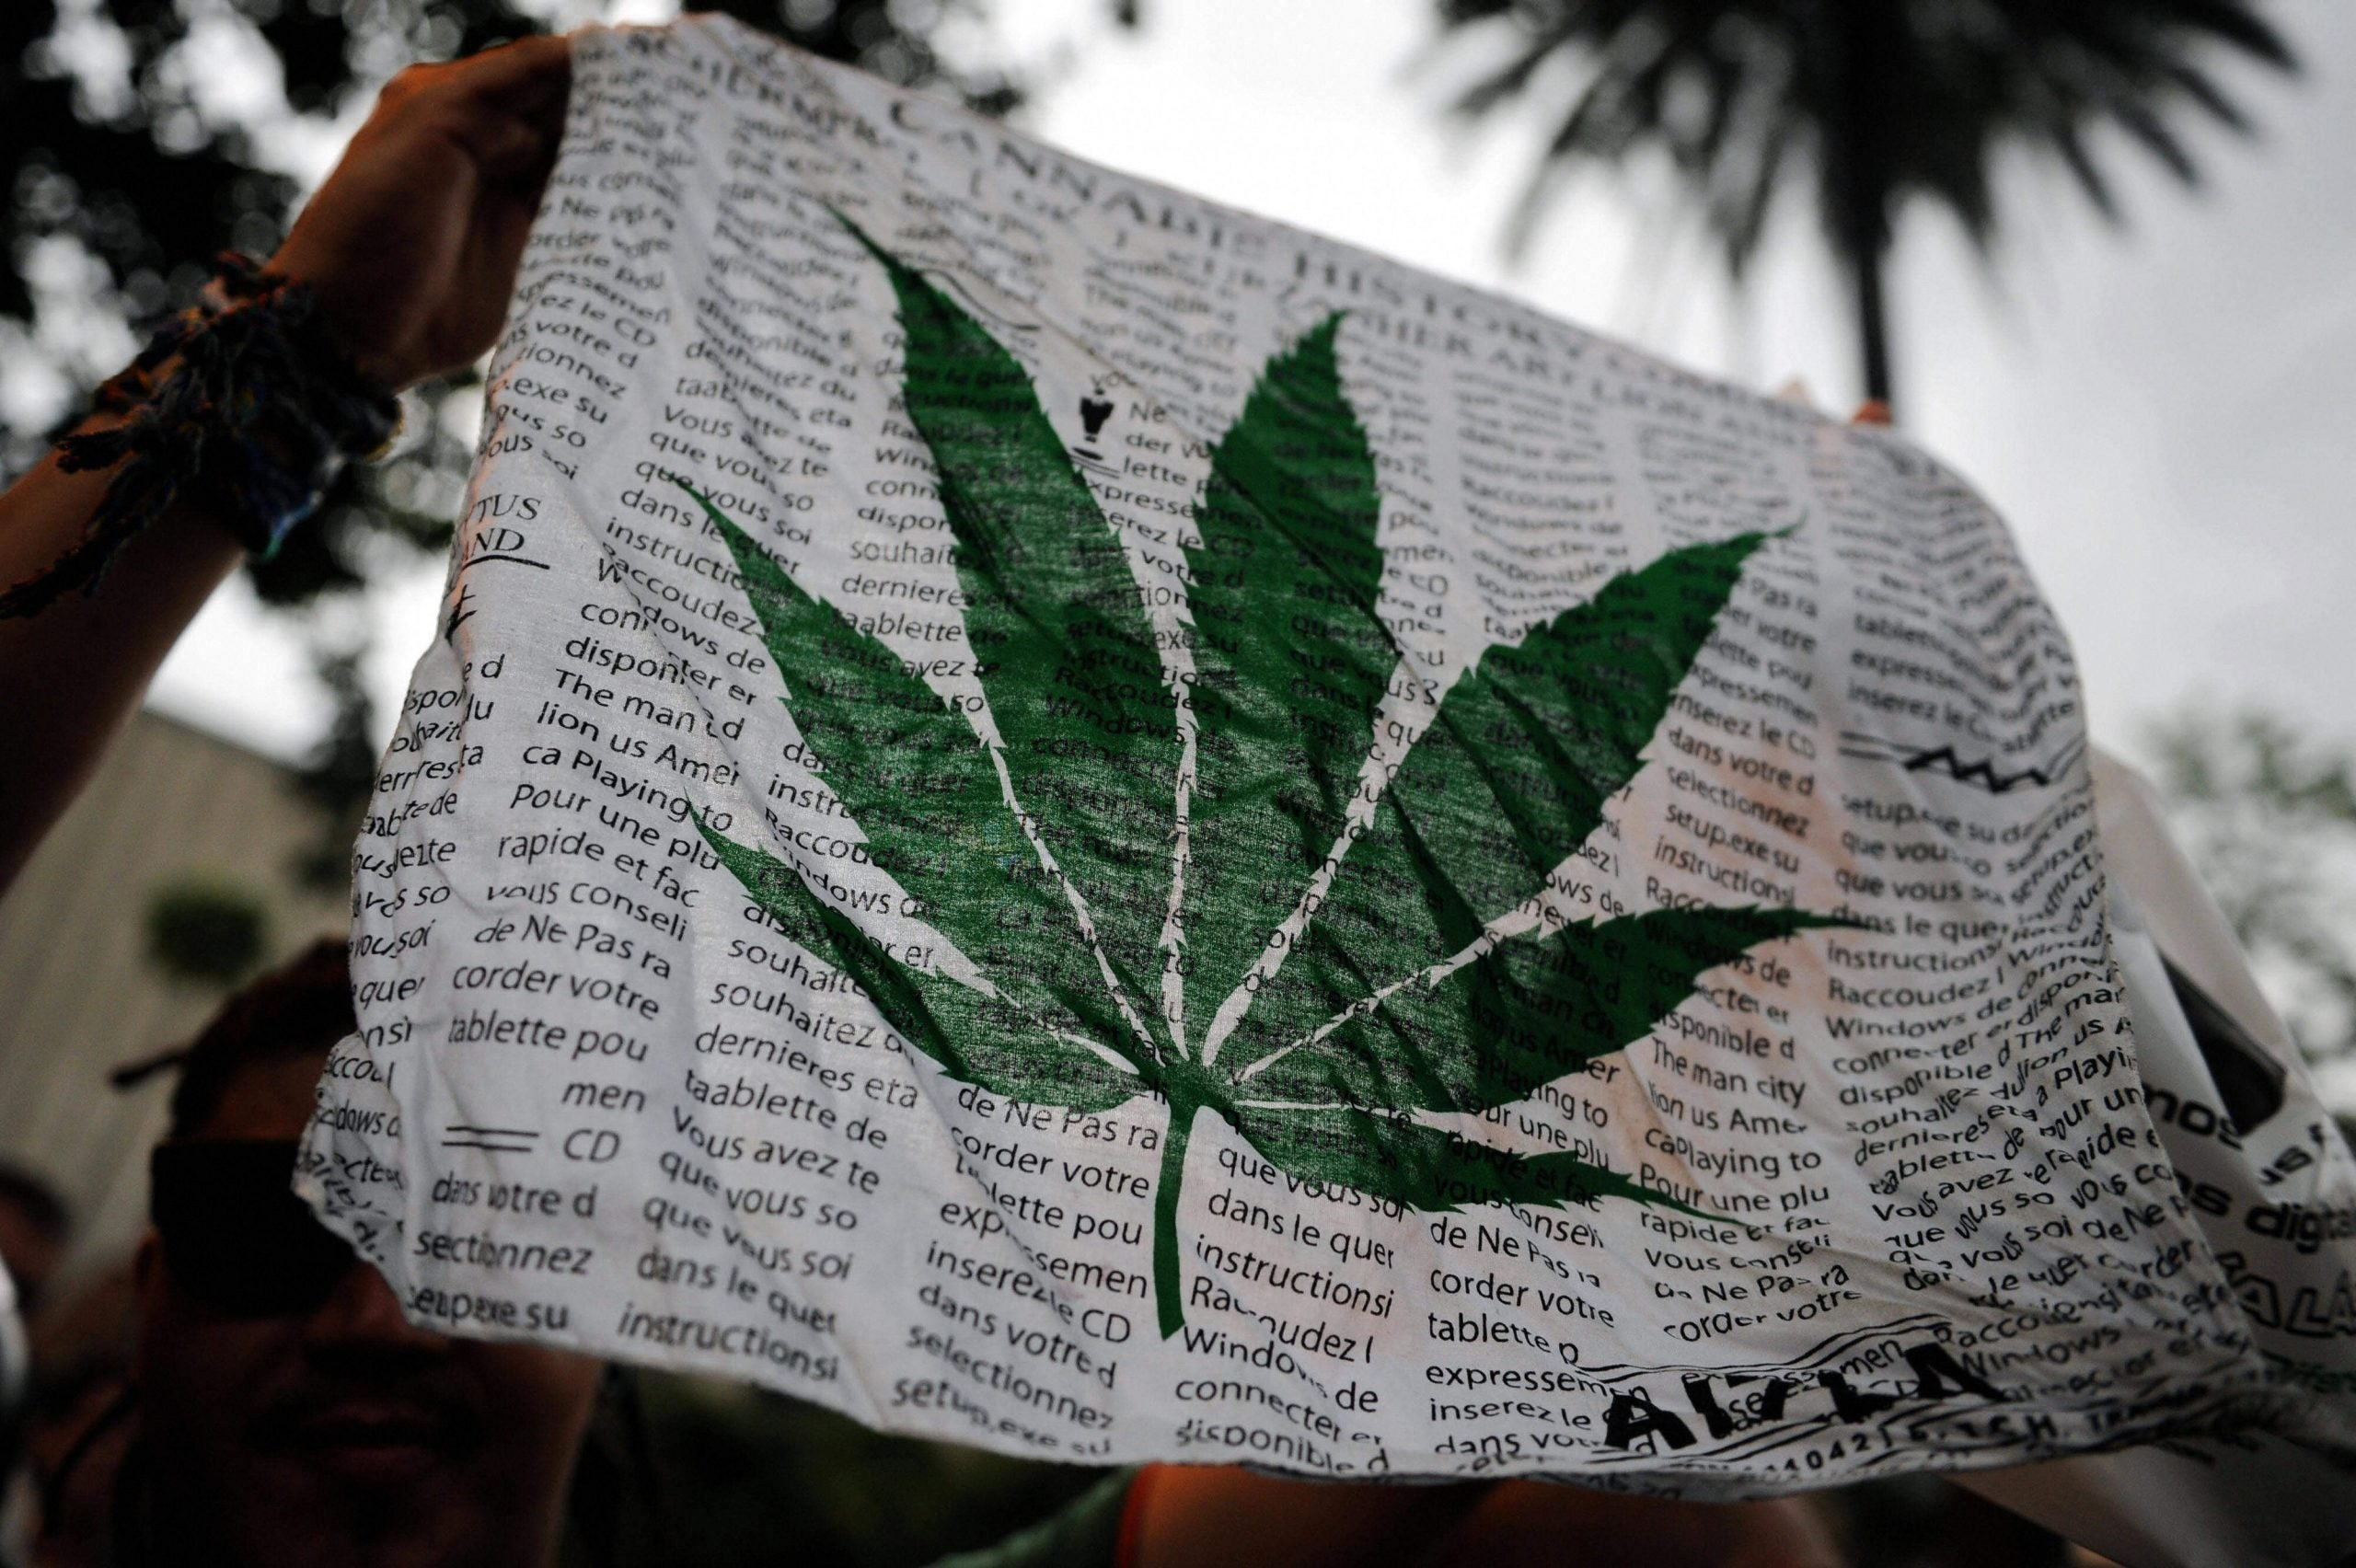 Cannabis is harmful, that's why it needs to be regulated